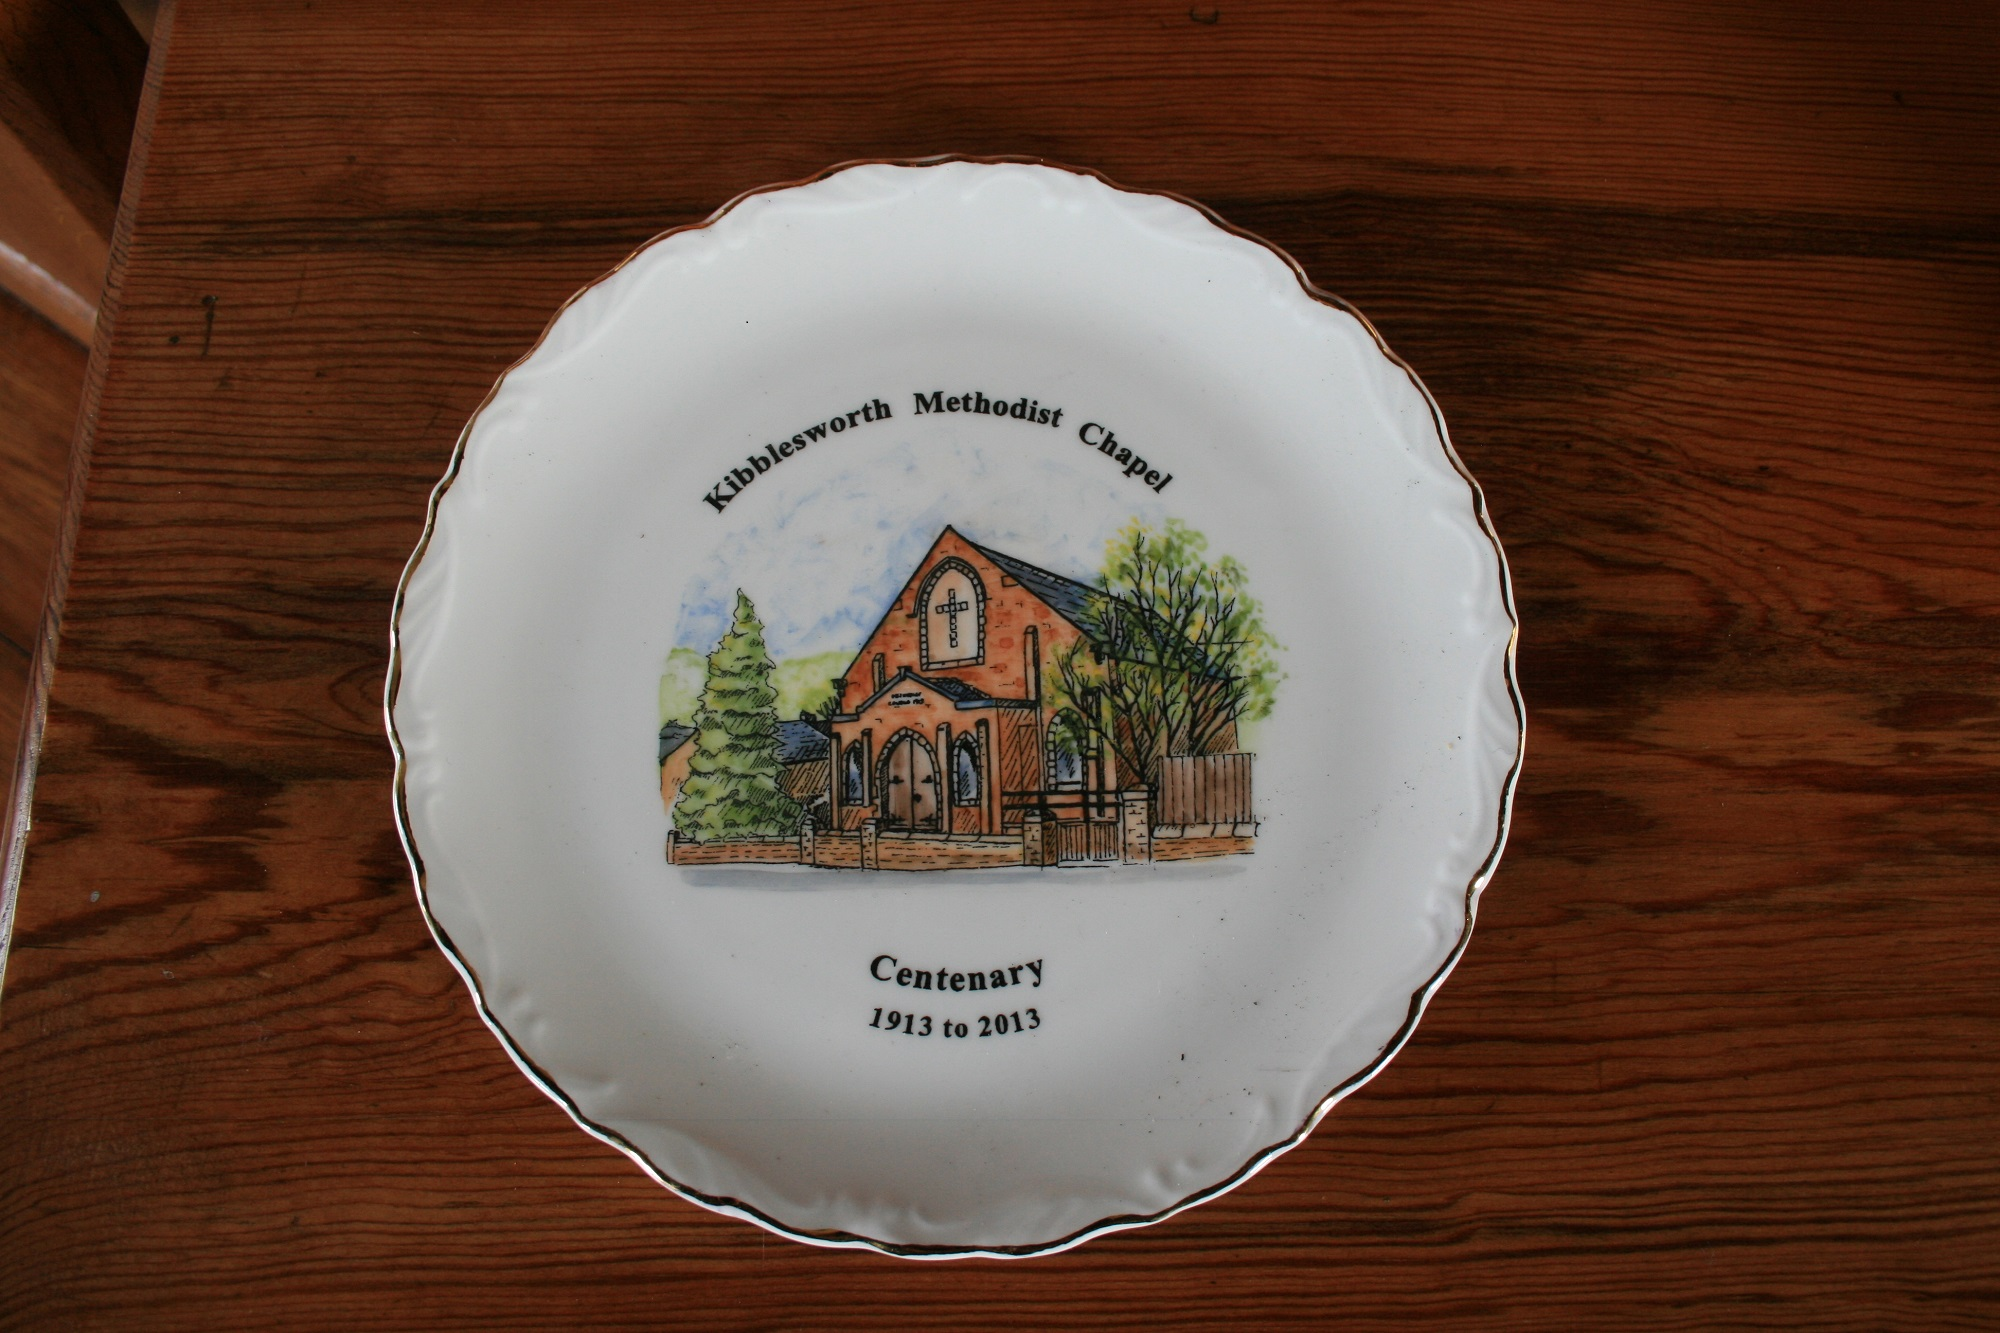 Commemorative Plate by Sue Betts